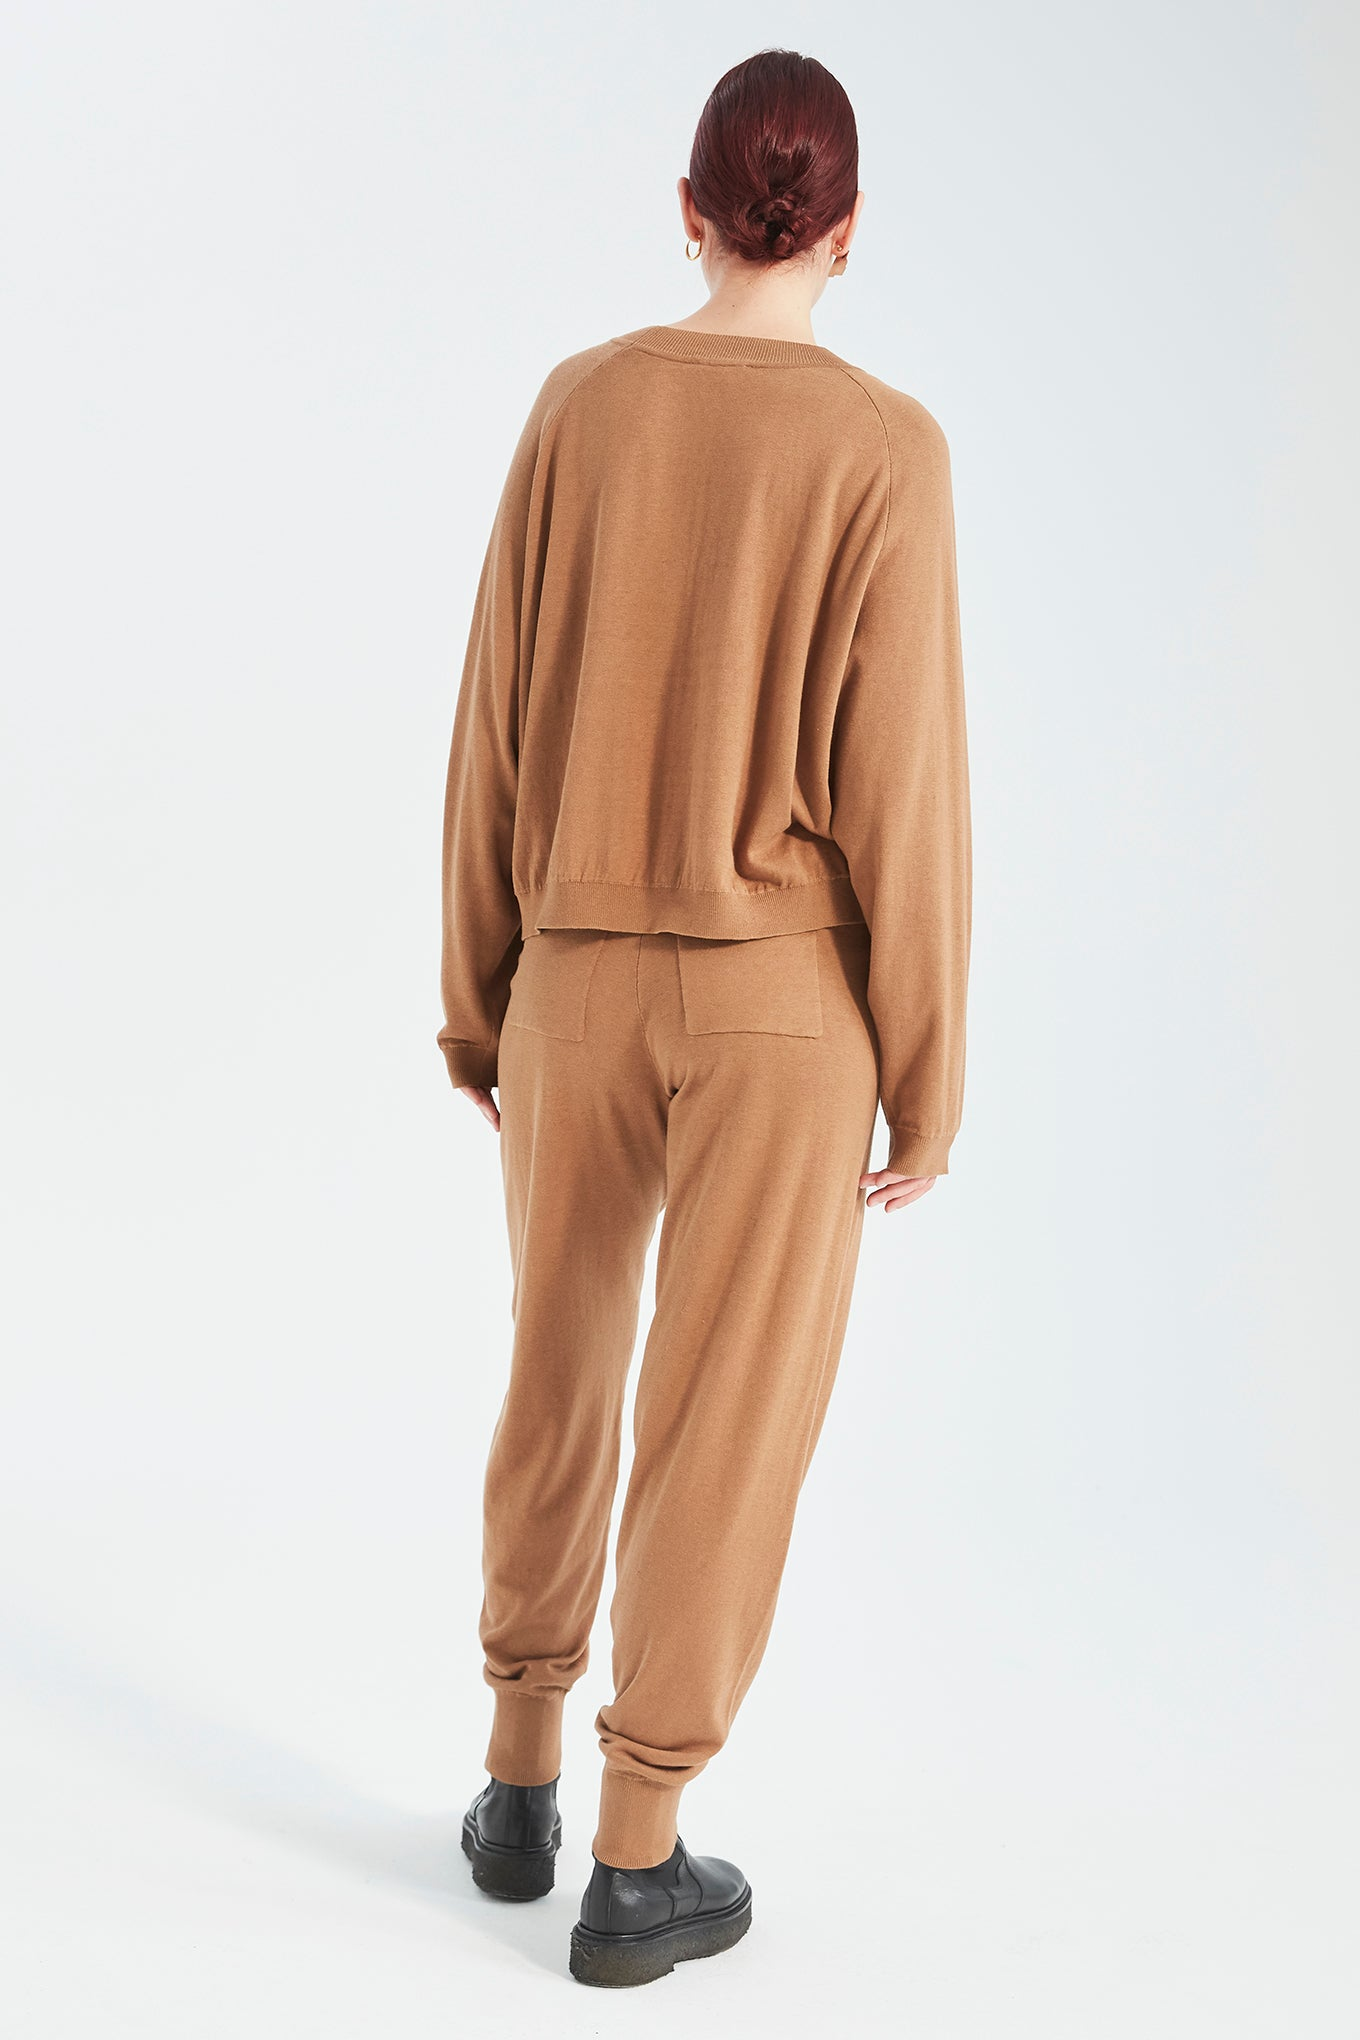 Kelly Knit - Milk Chocolate - Silk/Cotton